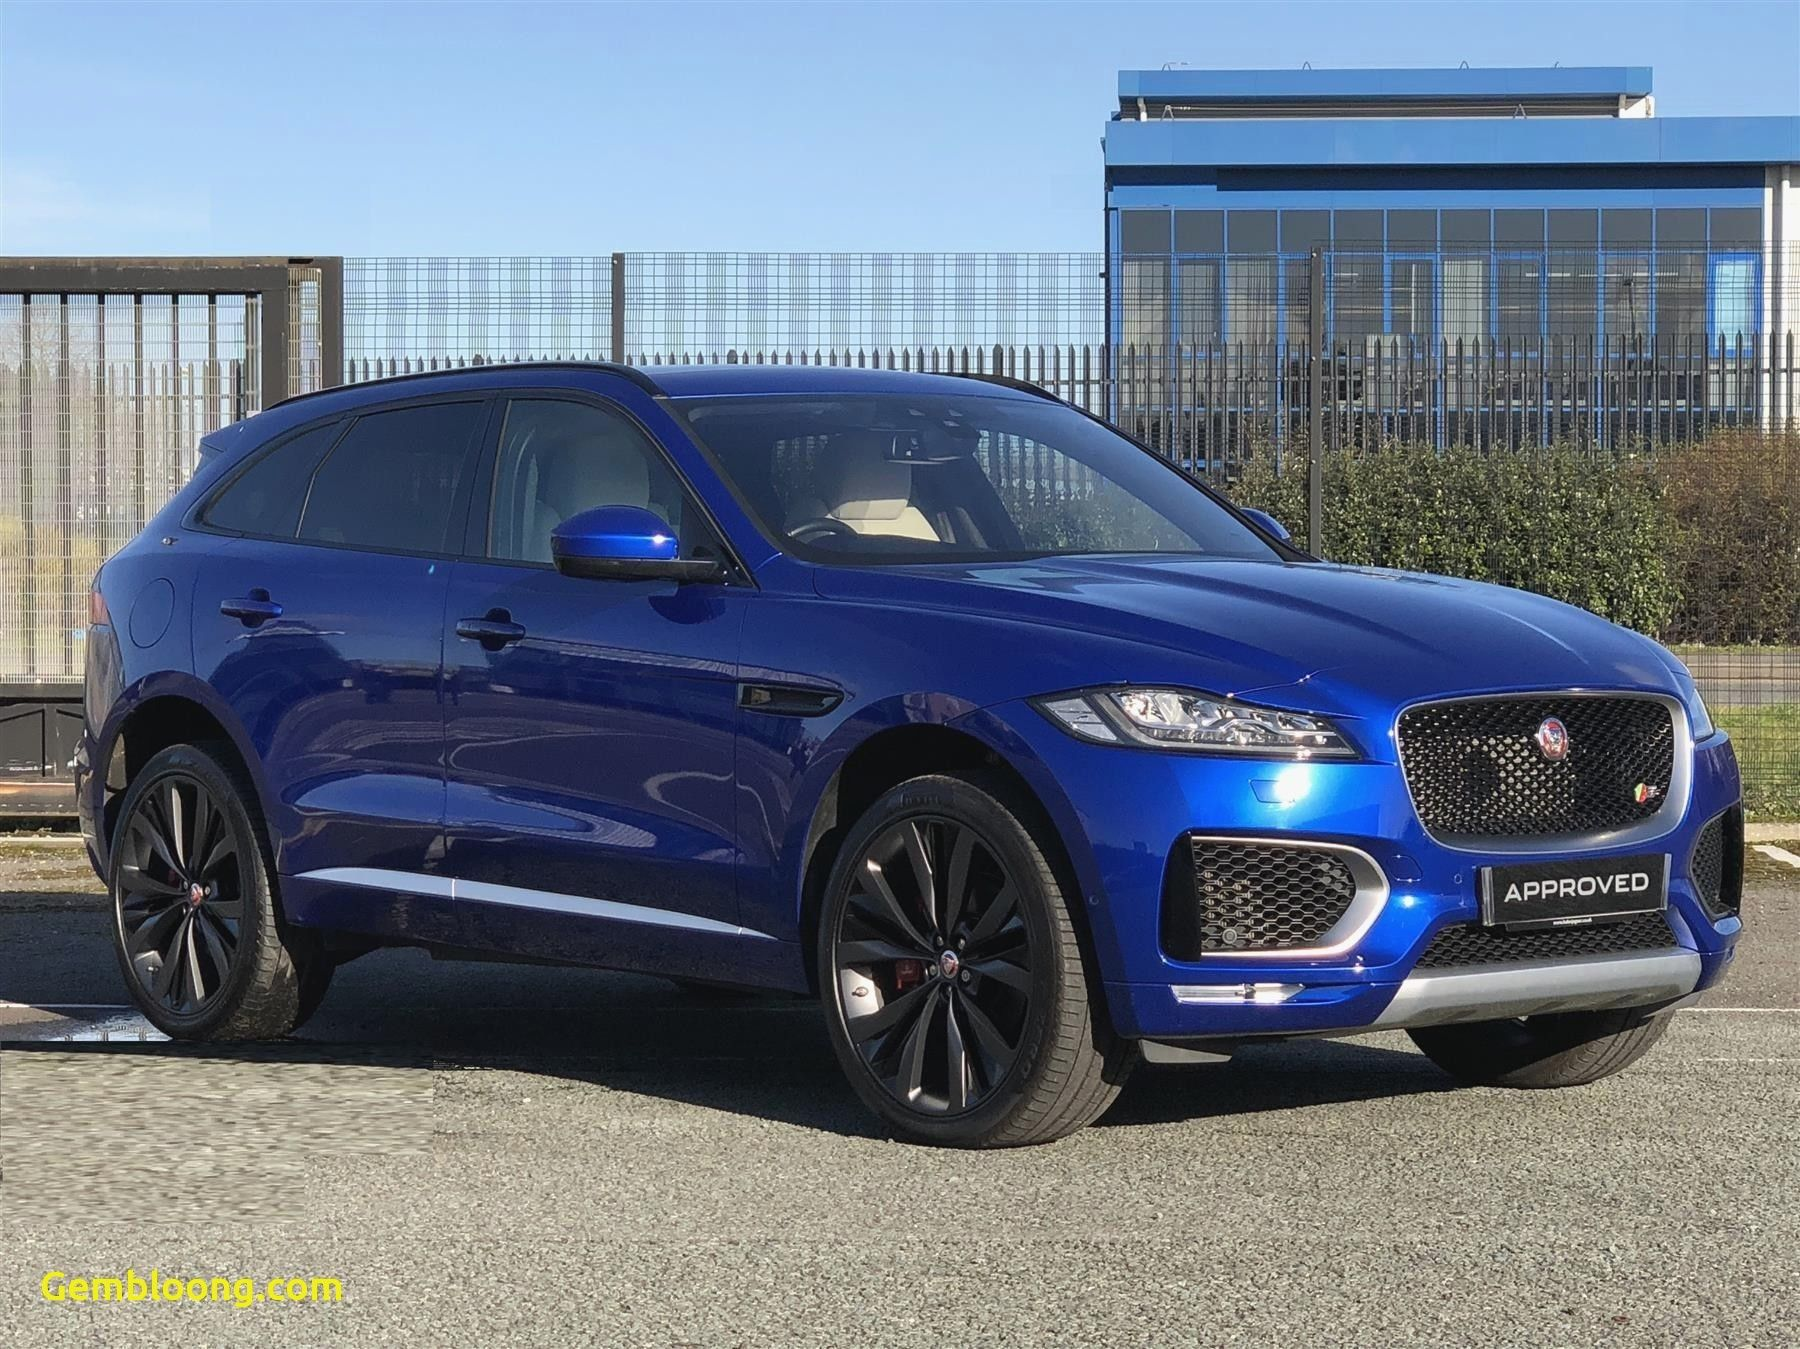 Cars For Sale Near Me Cheap Used Lovely All Used Cars For Sale Awesome Best Used 2016 Jaguar F Pace Best Used Luxury Cars Used Luxury Cars Jaguar Suv